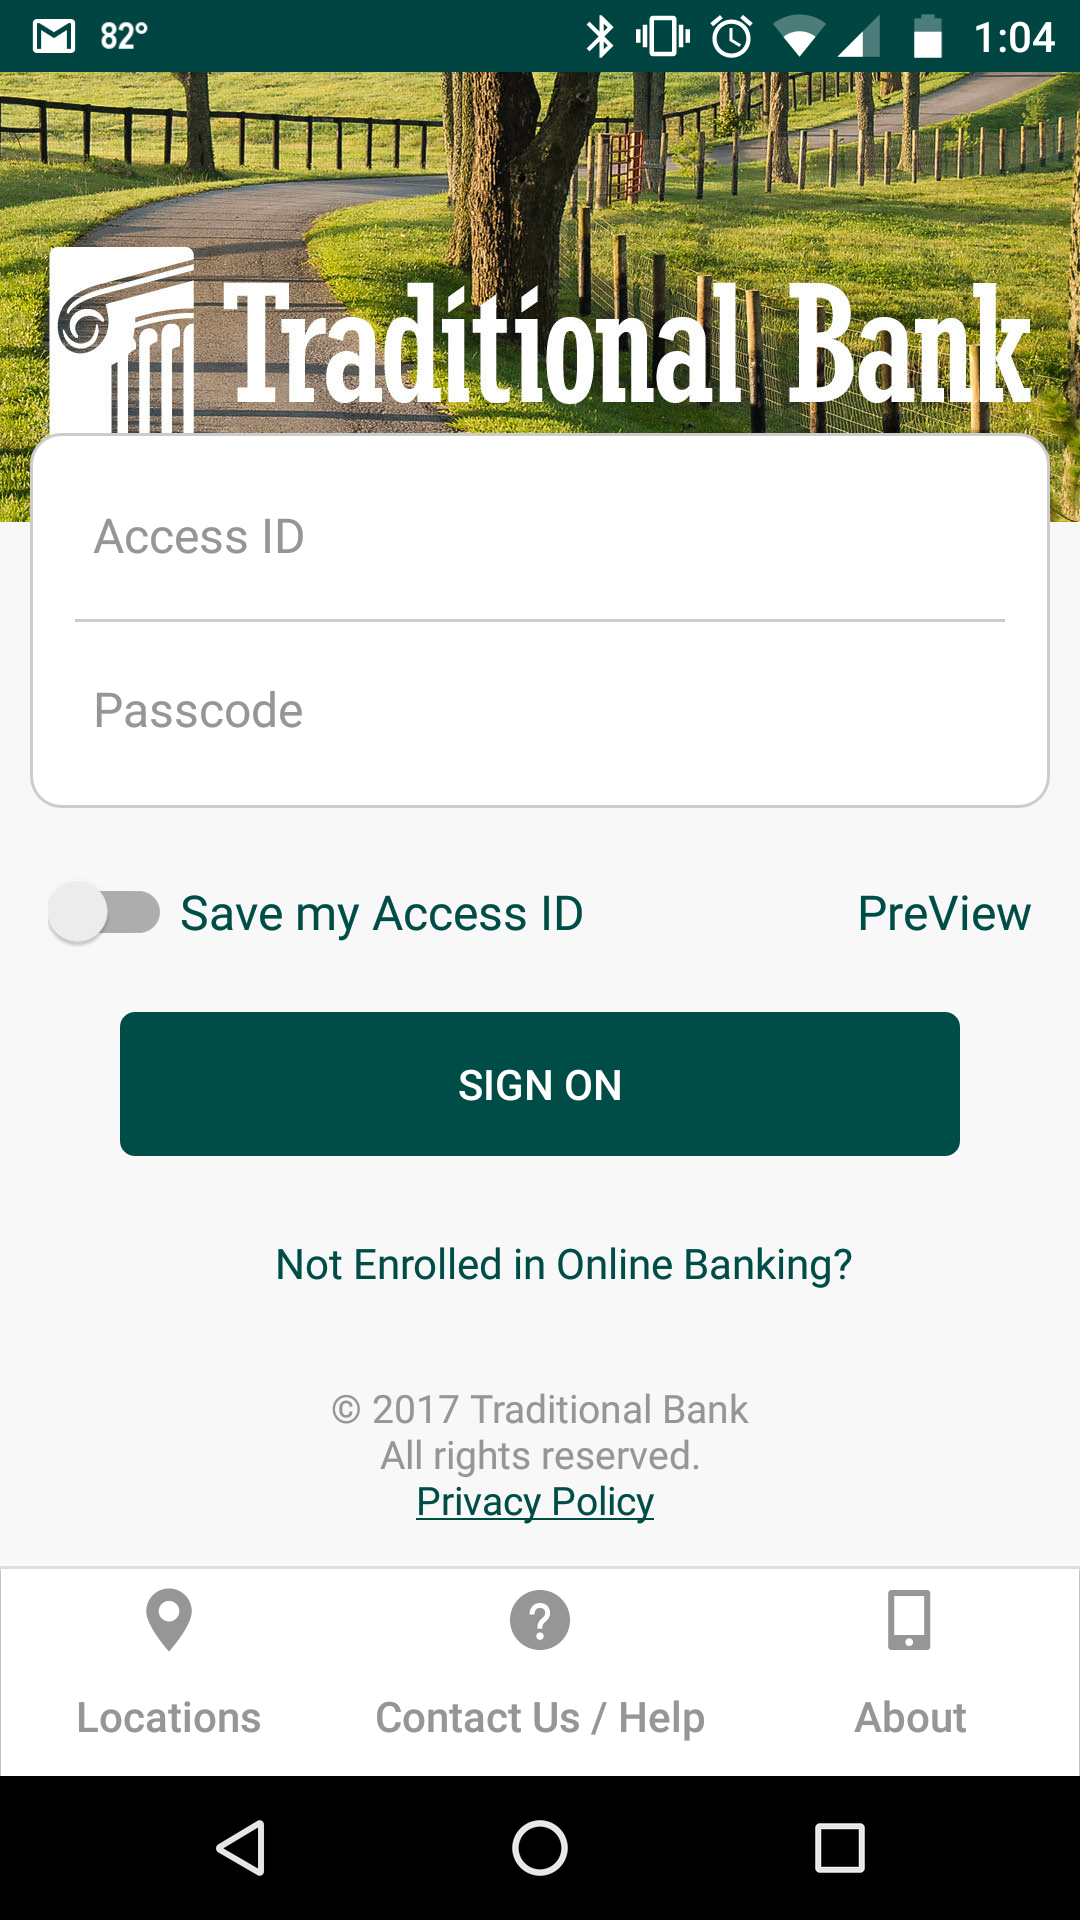 Mobile Banking Sign-on